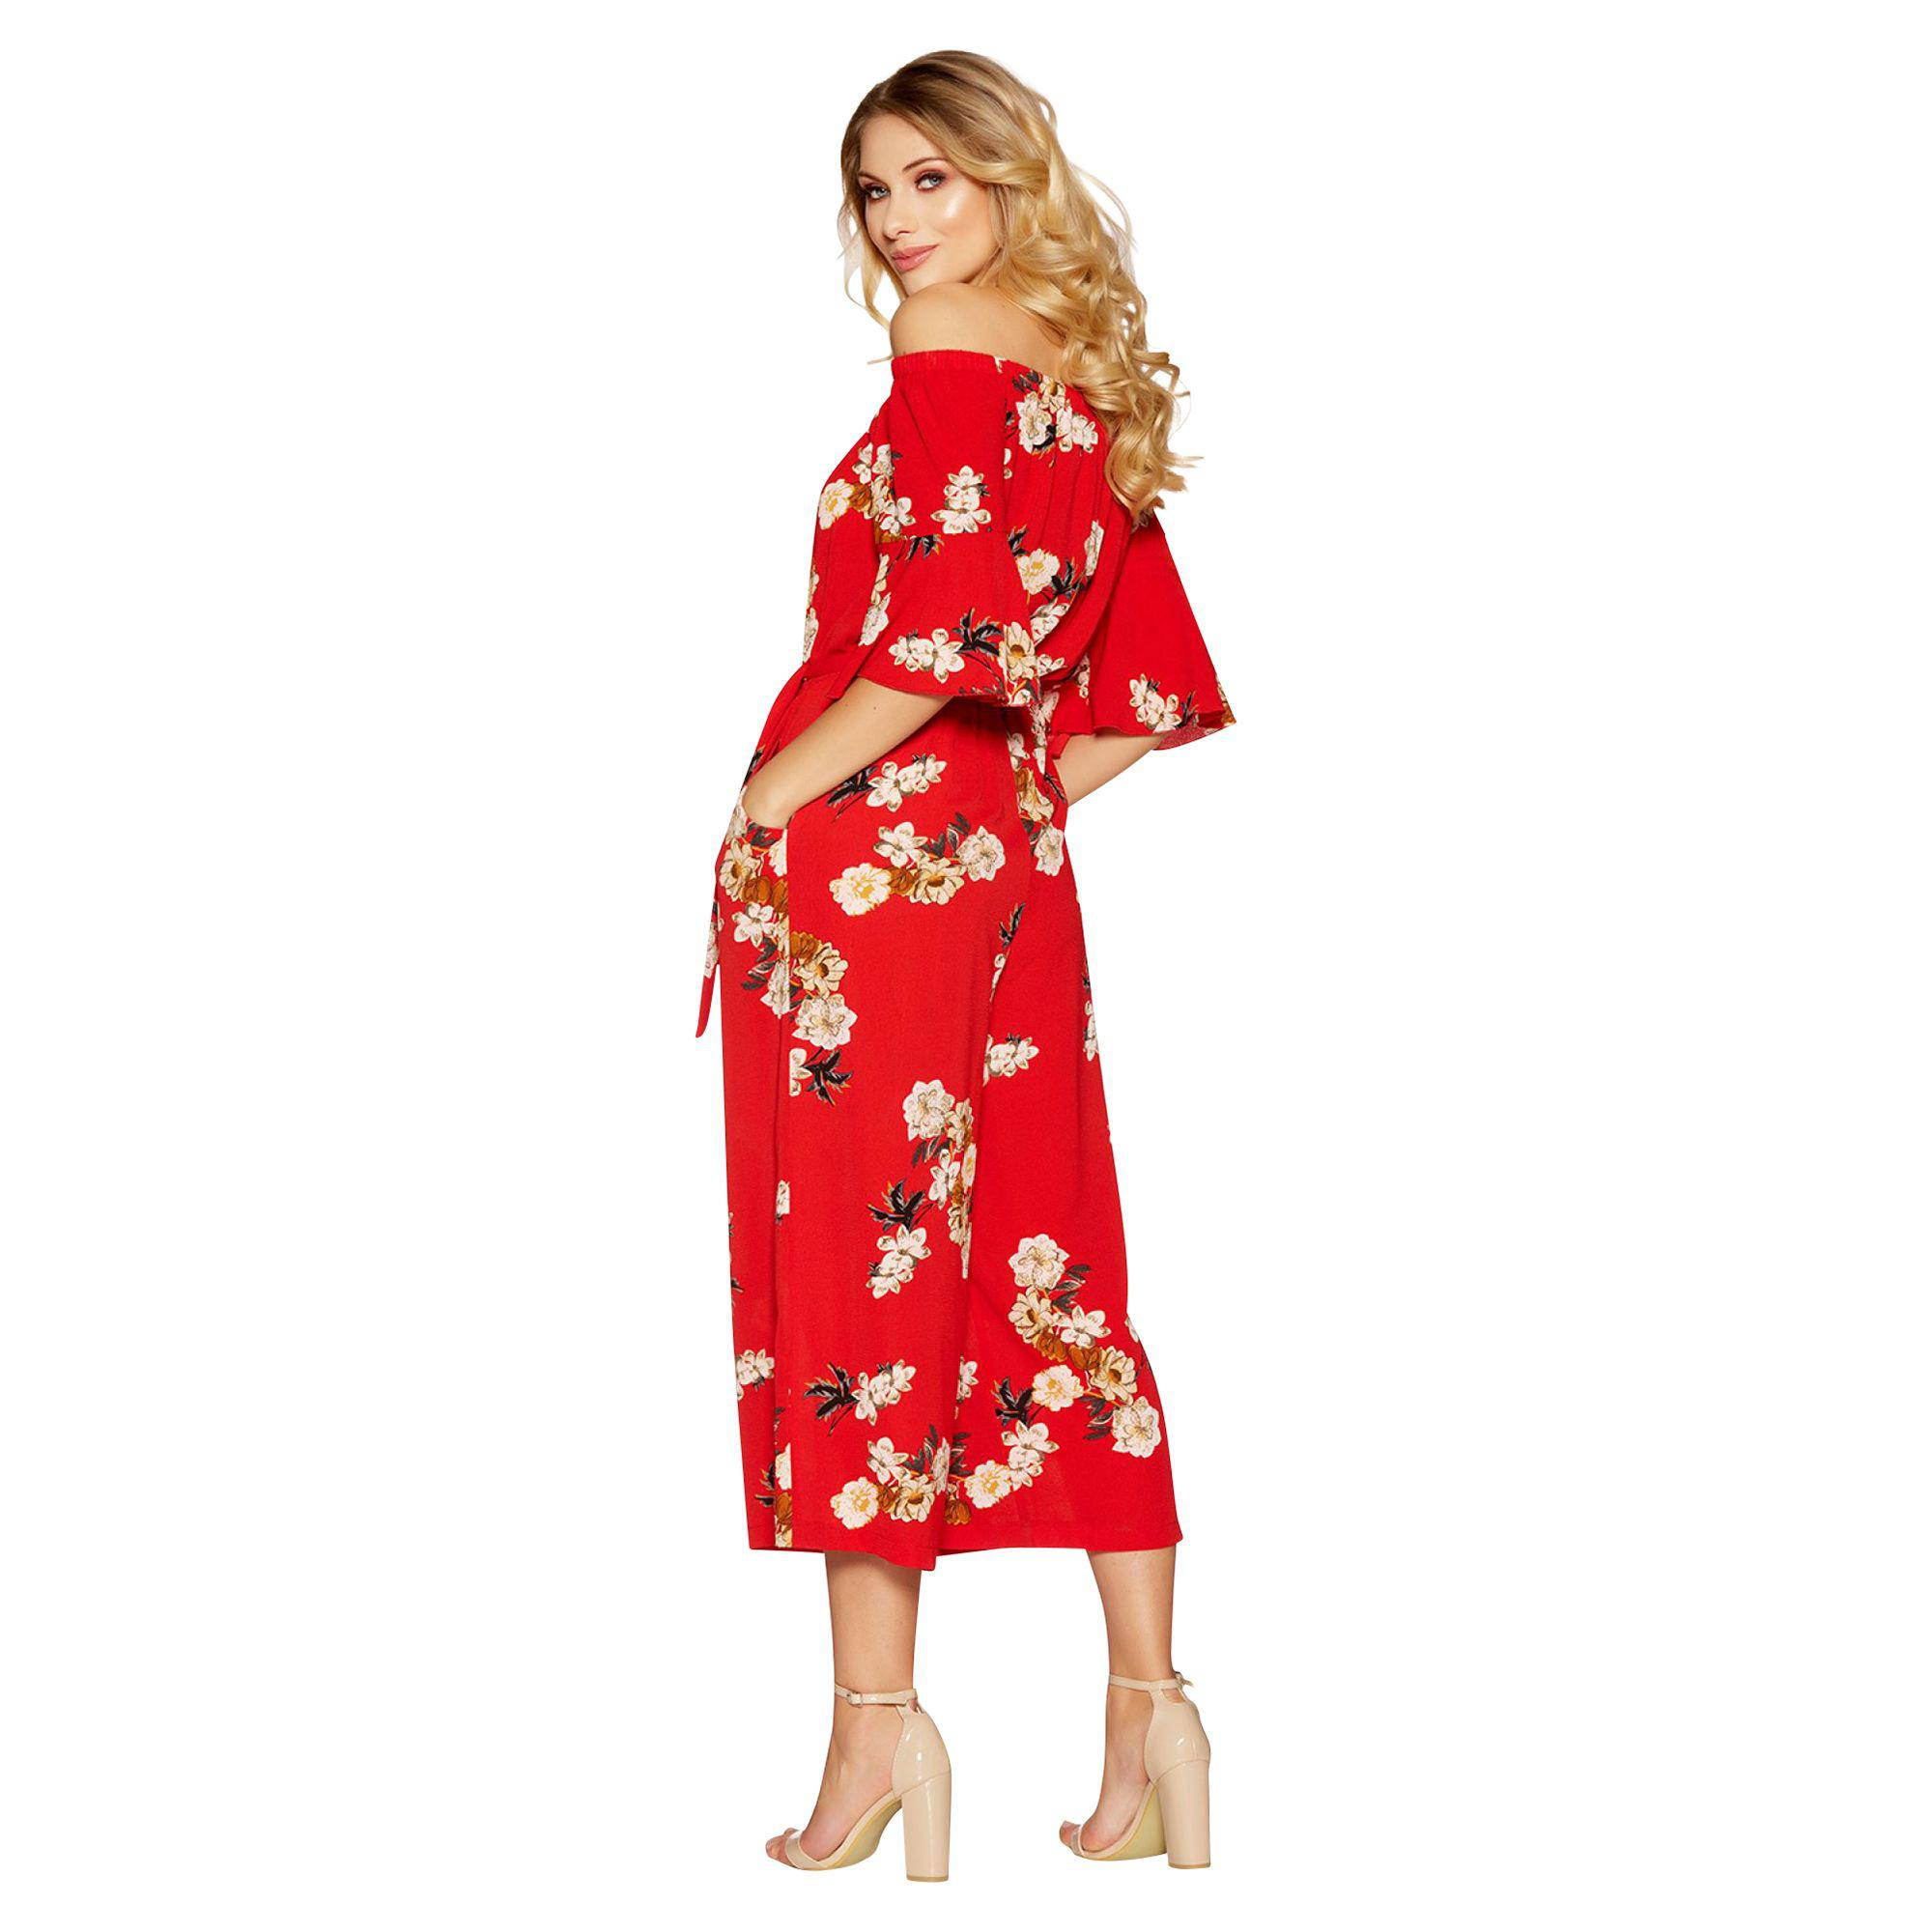 9e1cac13cb70 Quiz - Red Floral Print Frill Sleeve Culotte Jumpsuit - Lyst. View  fullscreen